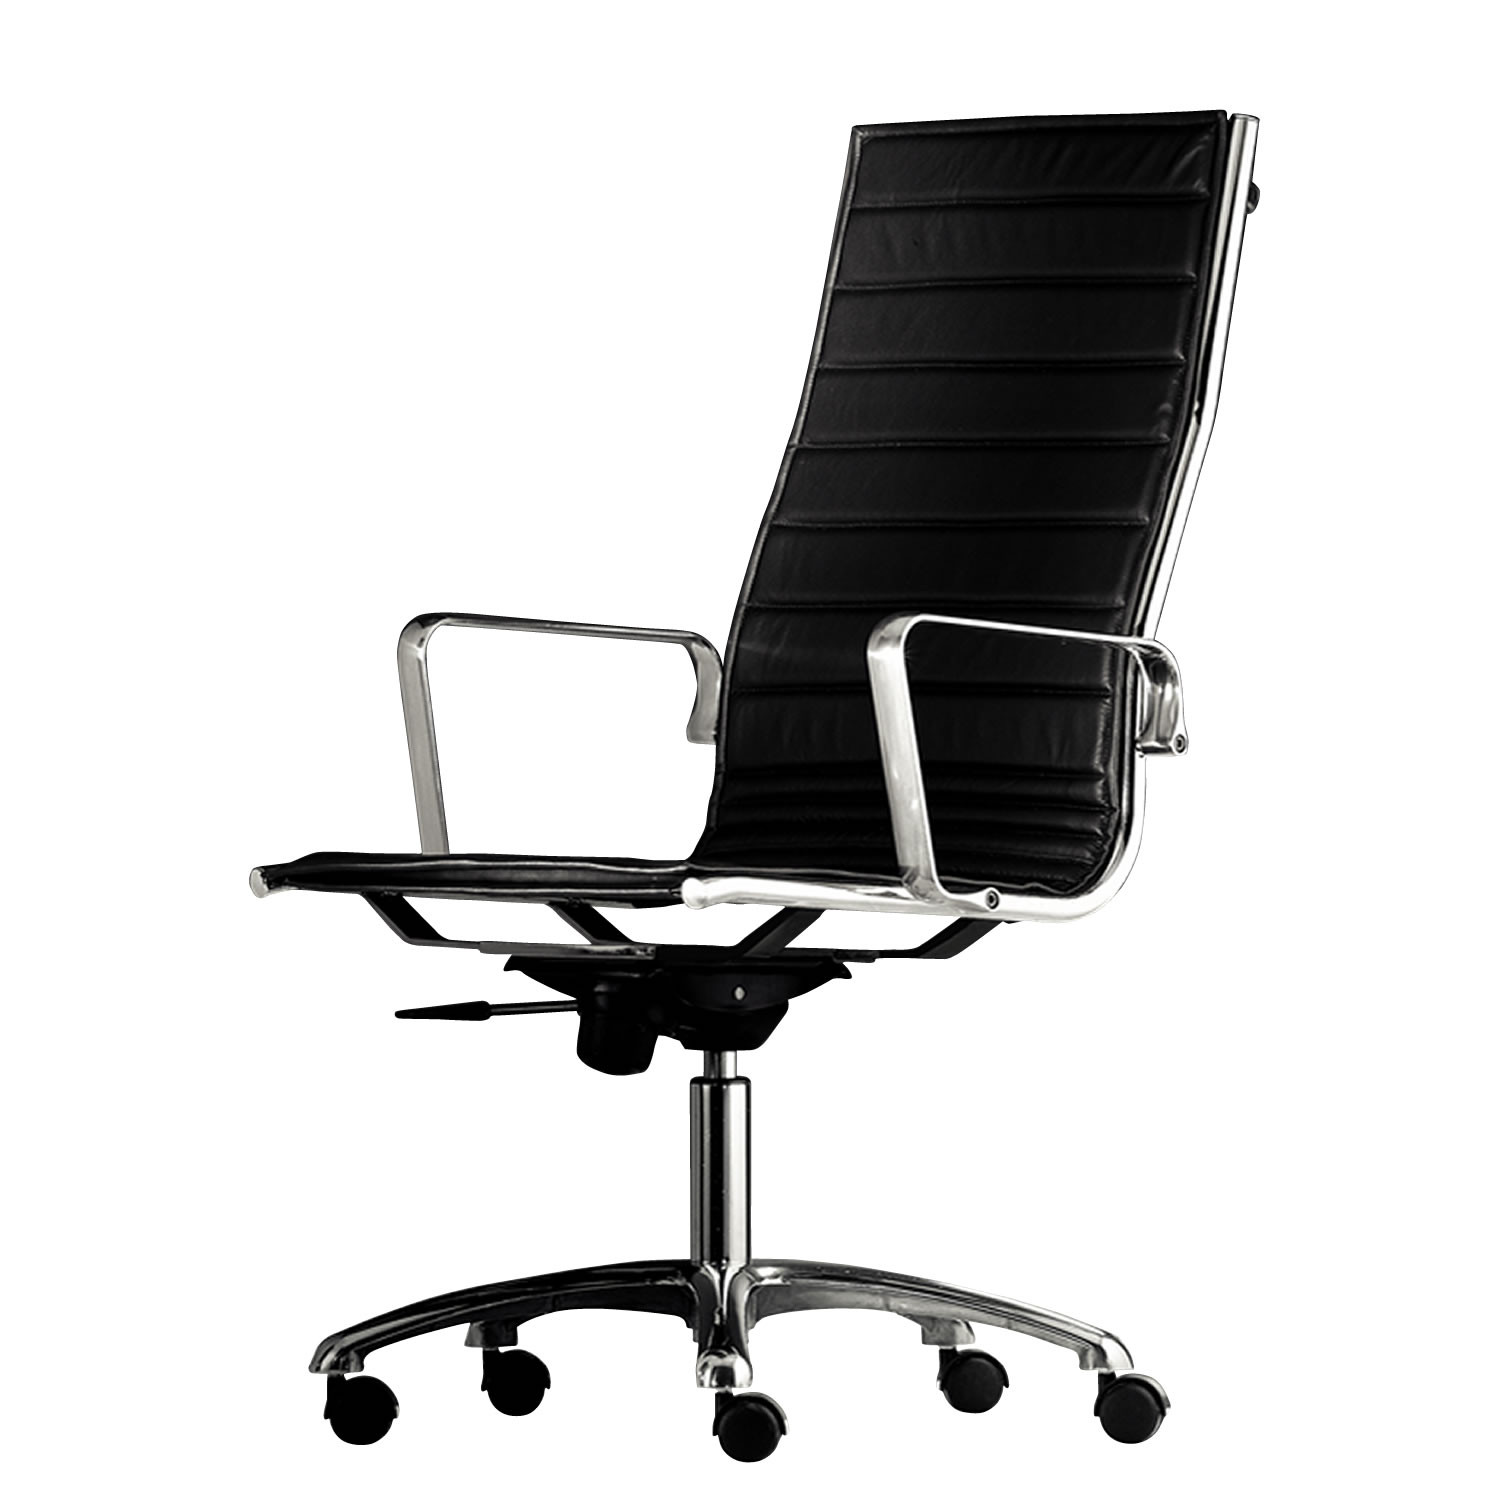 Light Chair wih high height backrest